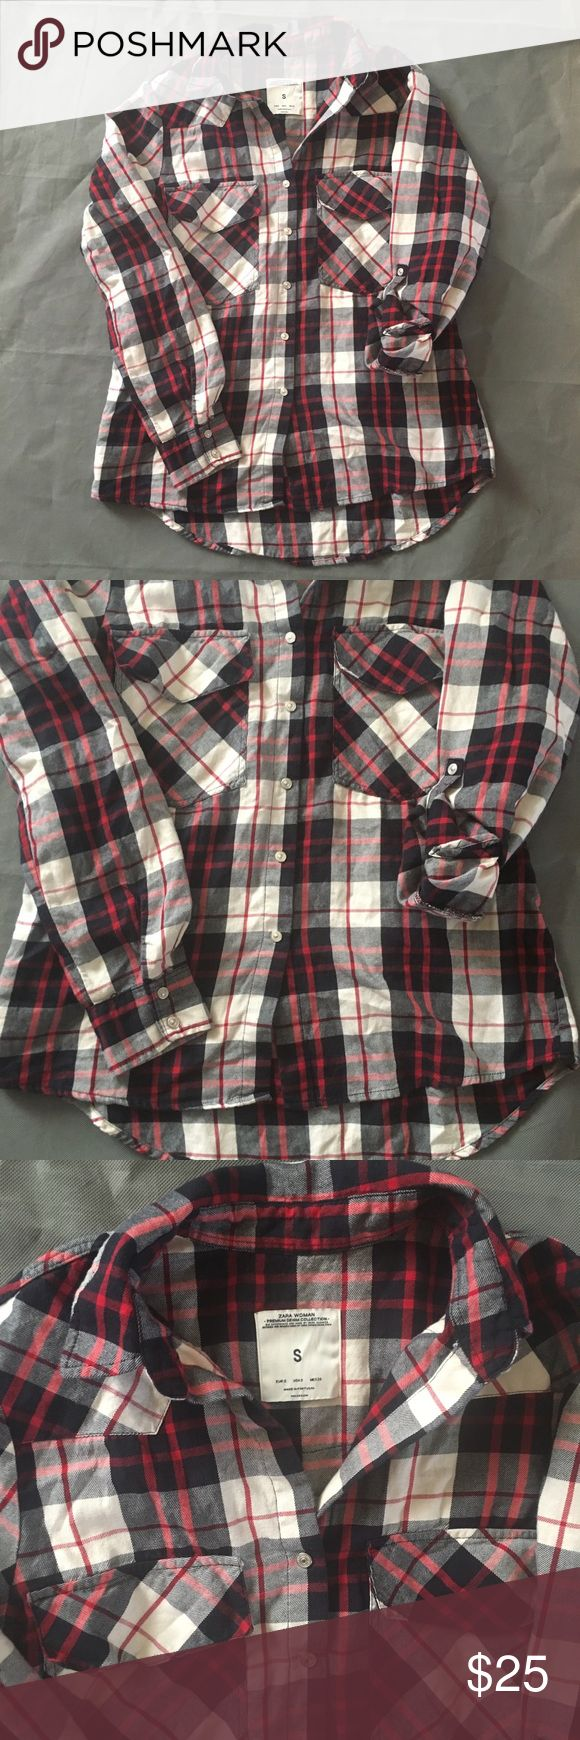 ZARA Woman Premium Denim Plaid Flannel Shirt Small In overall great condition. Check out our closet for great bundle offers! Price firm unless bundled! Zara Tops Button Down Shirts